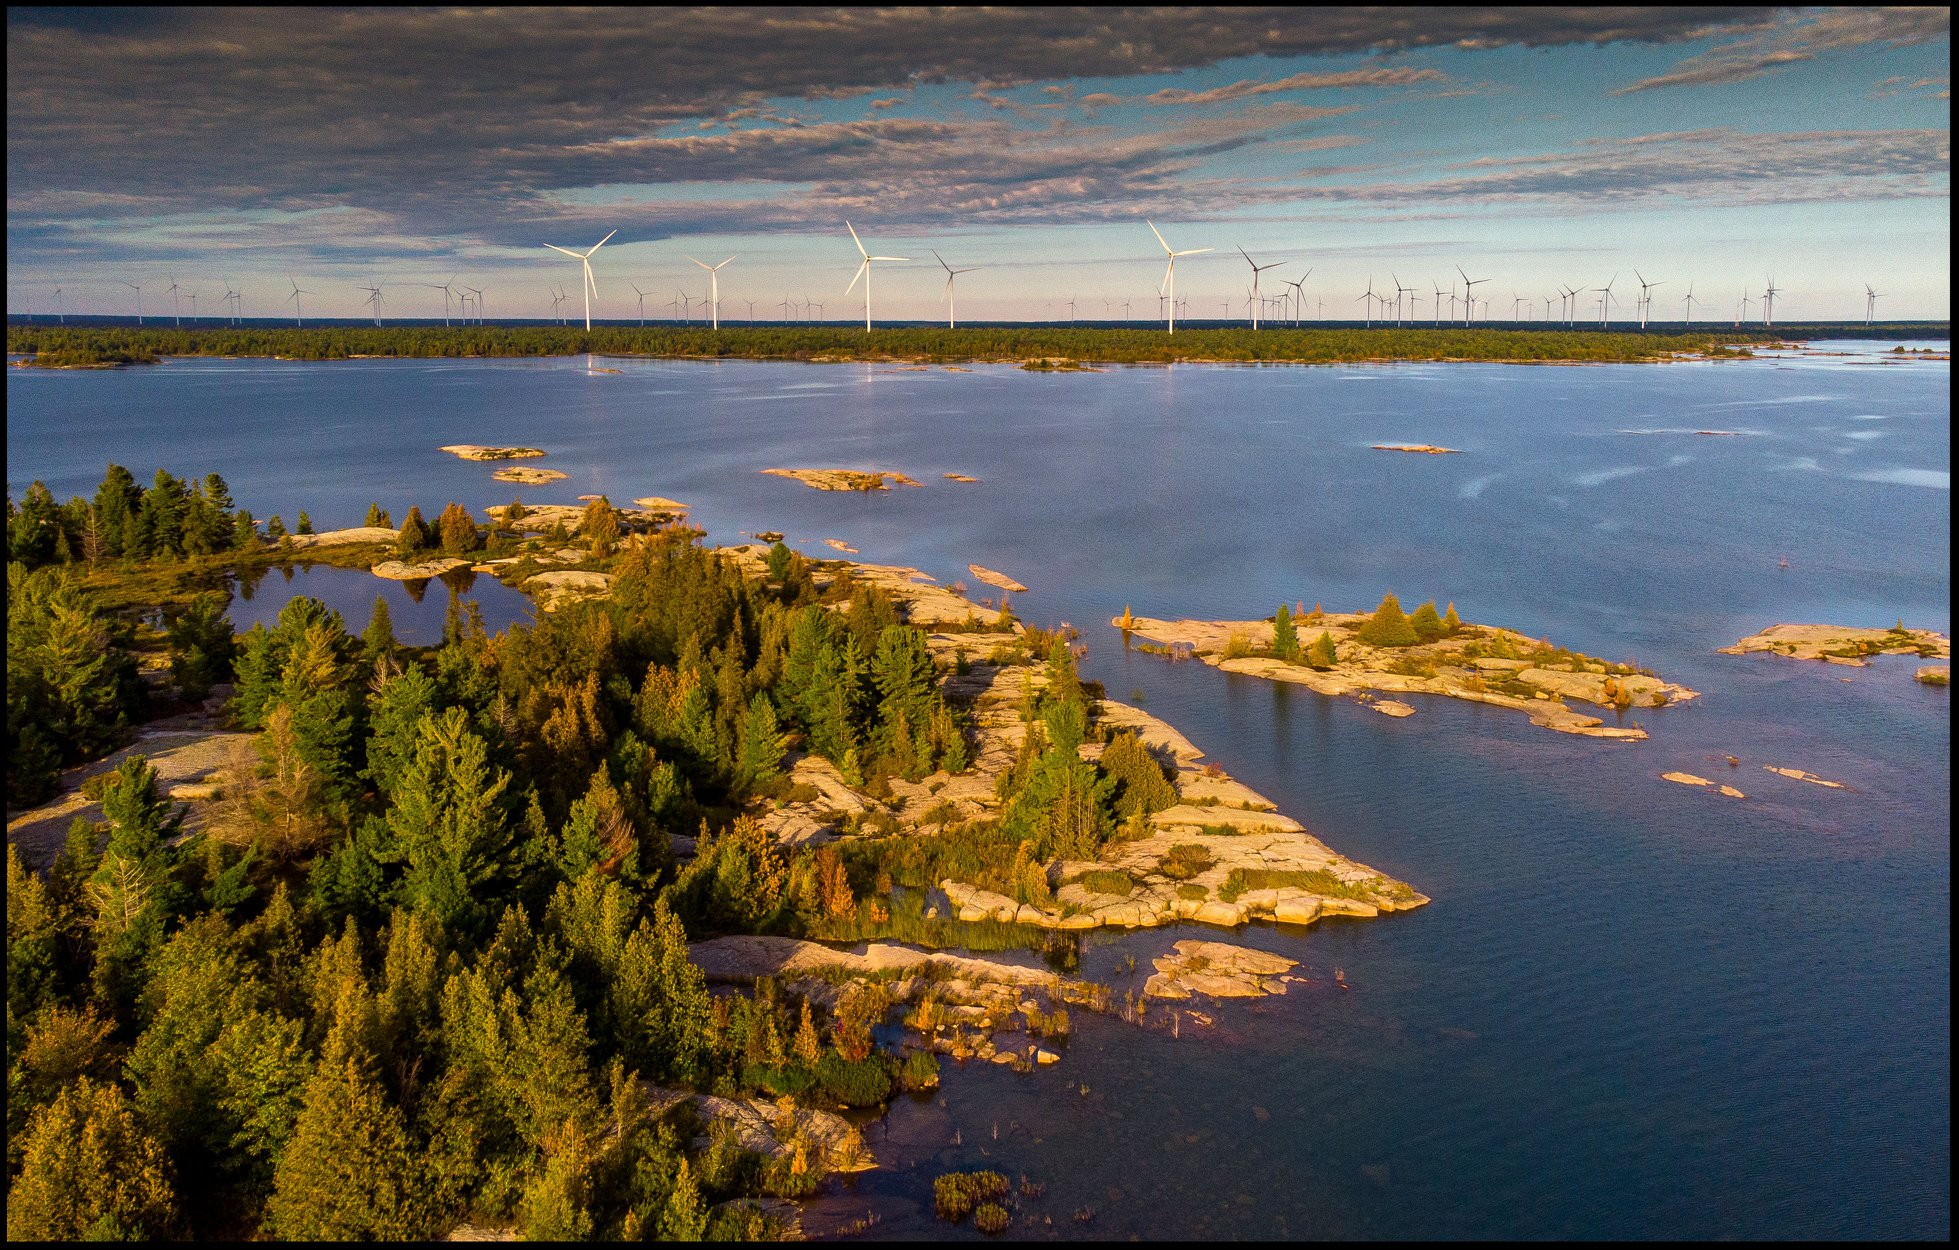 CANADA: Construction completed on the largest First Nation wind project in the country